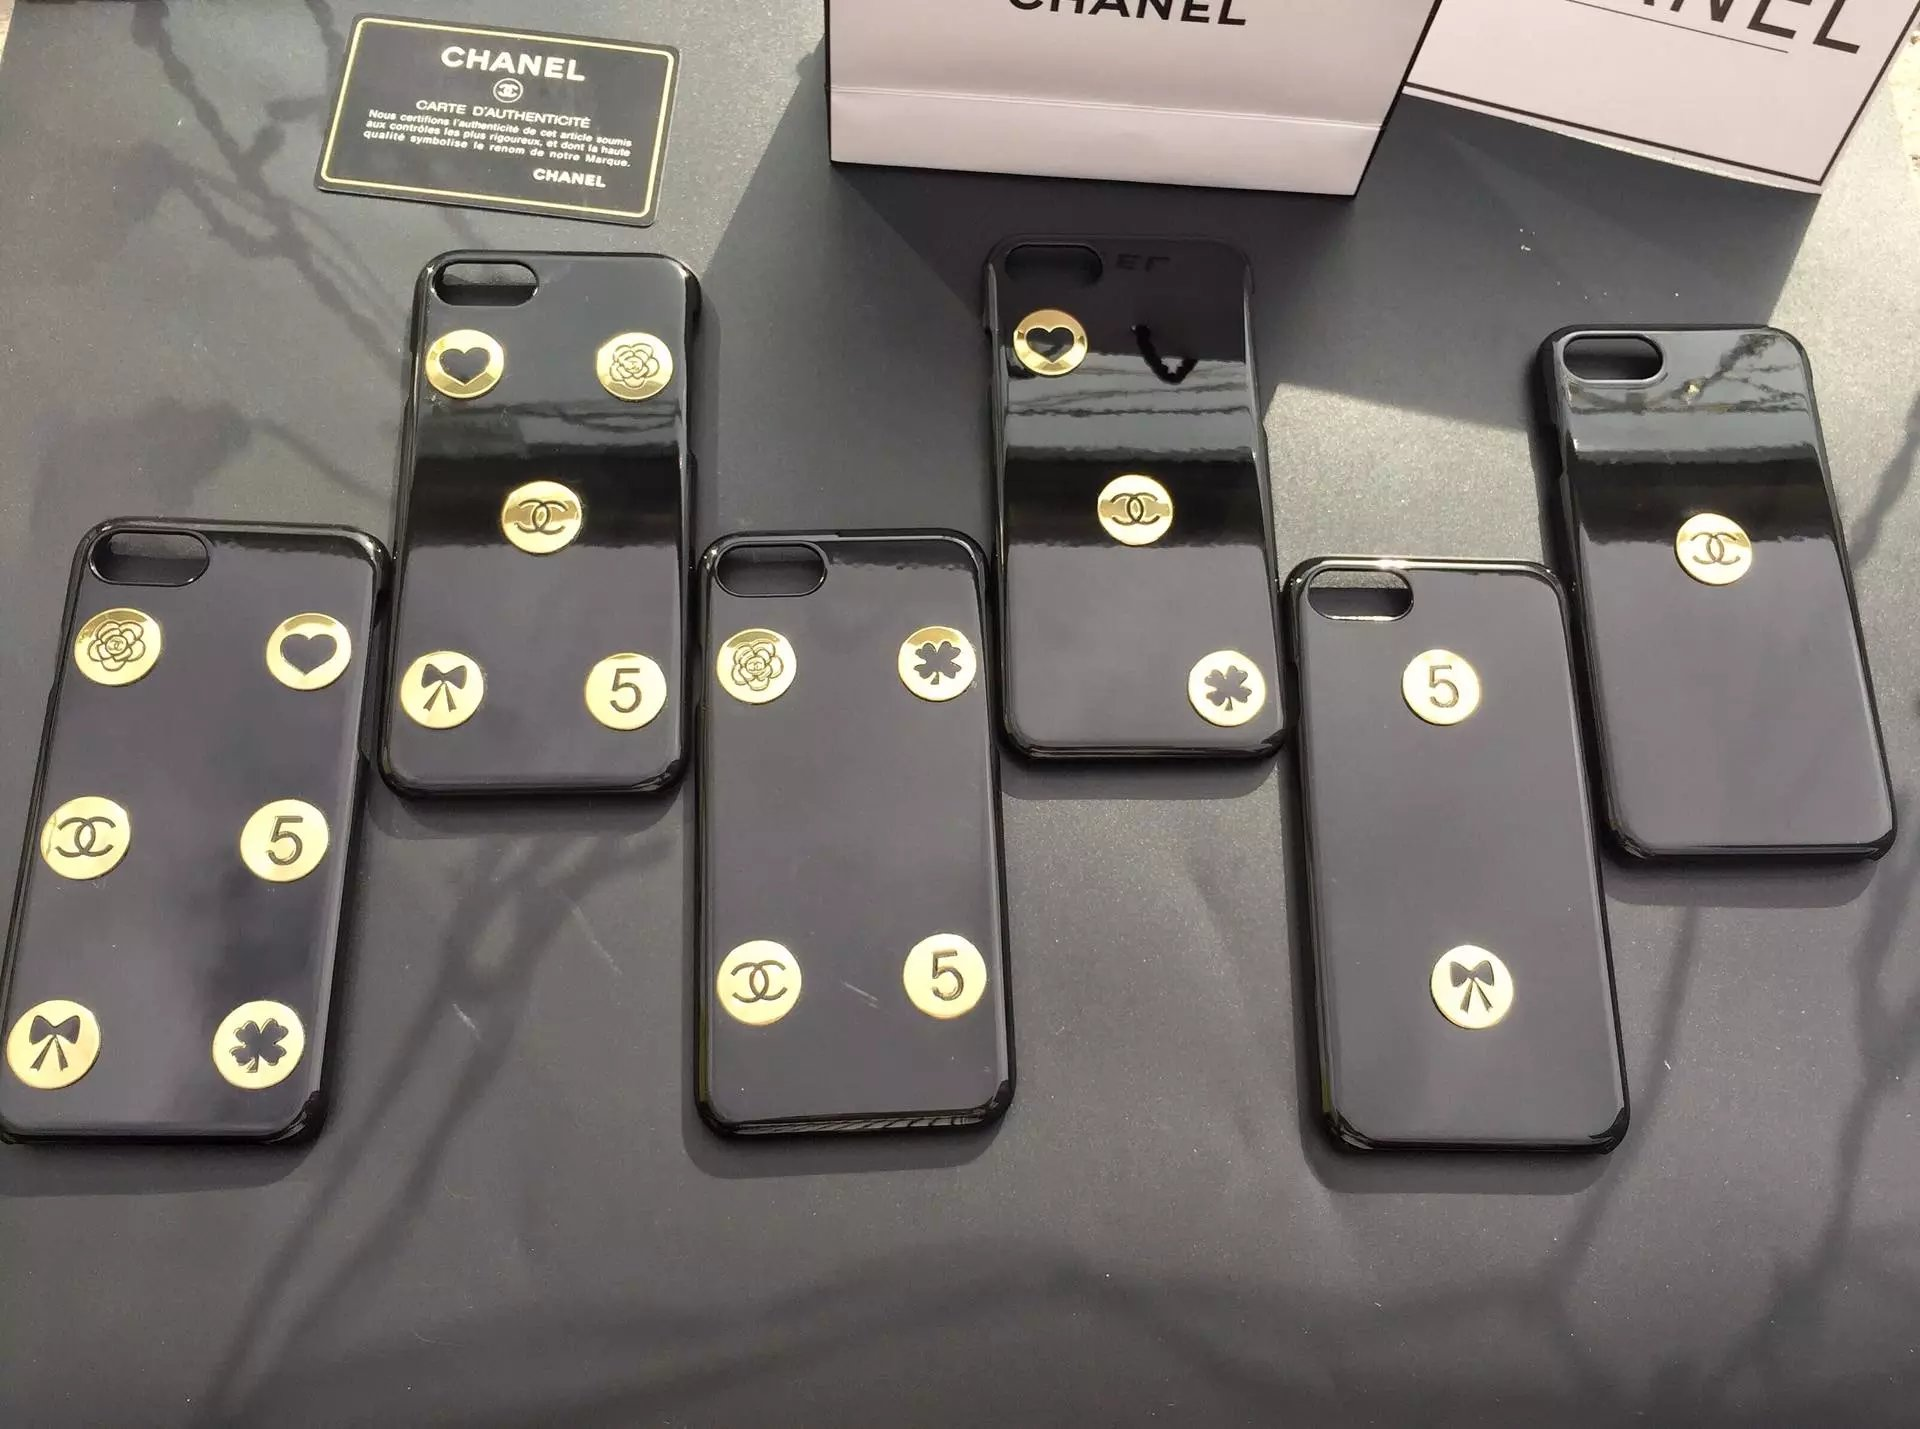 iphone hüllen bestellen iphone gummihülle Chanel iphone 8 hüllen iphone 8 schutz handyhülle foto wann kommt neues iphone raus iphone design hülle iphone 8 gold hülle iphone handyhülle